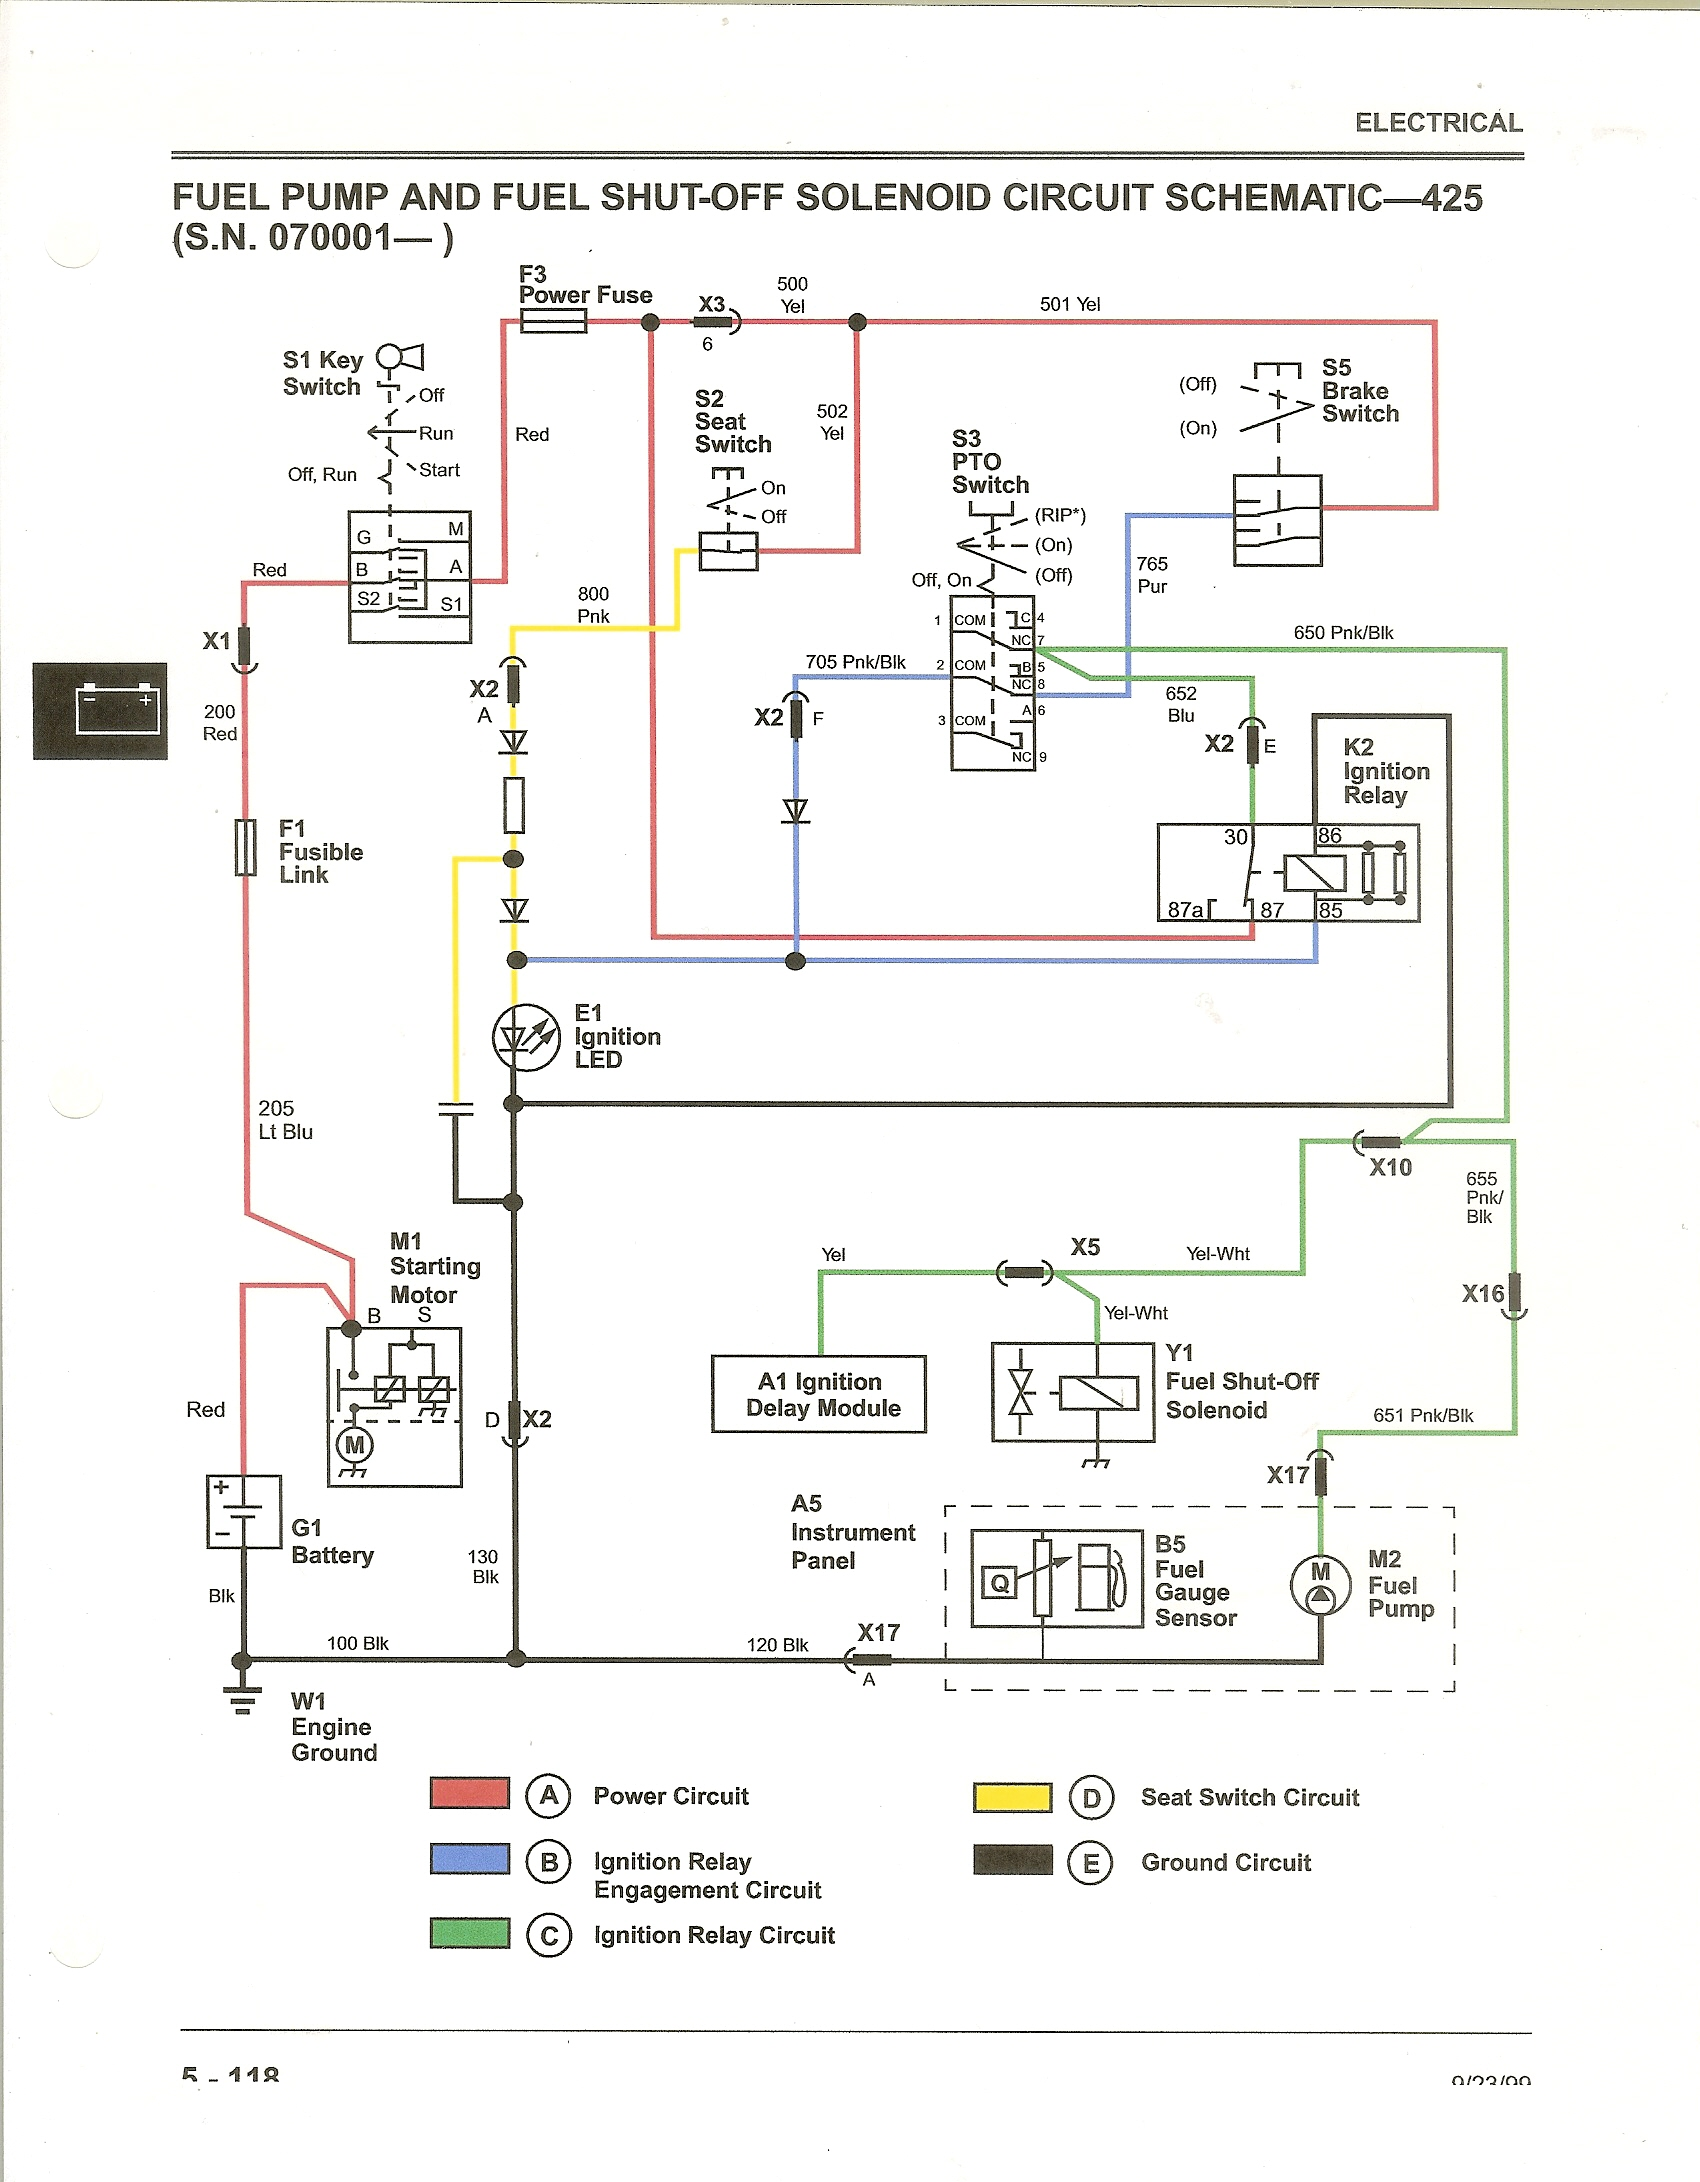 425 ignition - motor cranks when key is turned to run john deere 425 ignition wiring diagram john deere 240 ignition wiring diagram